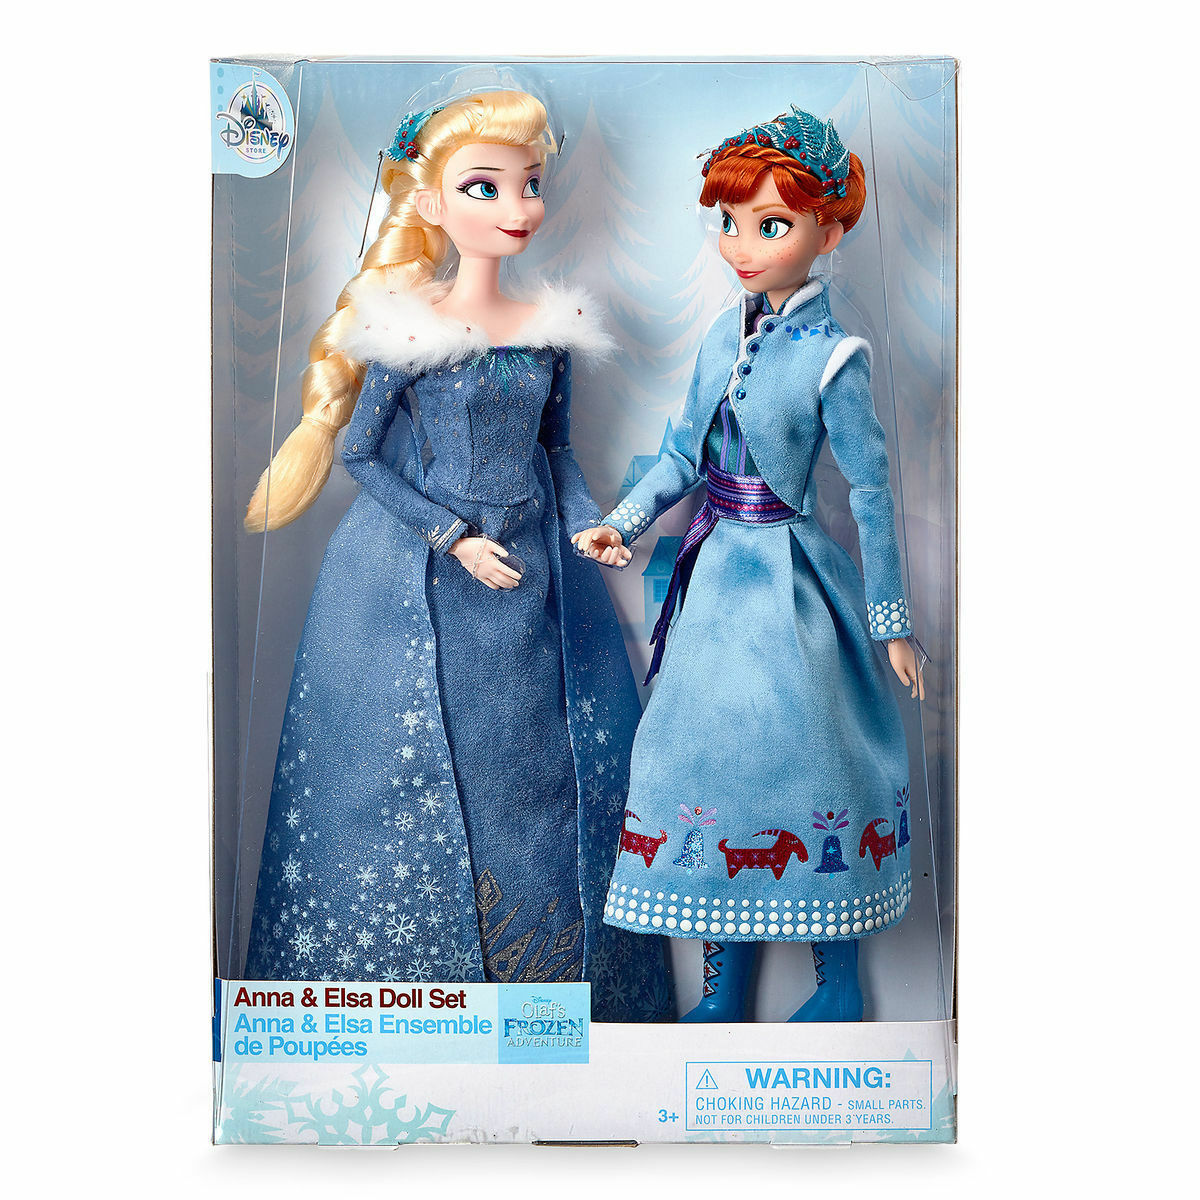 Anna and Elsa Doll Set - Olaf's Frozen Adventure